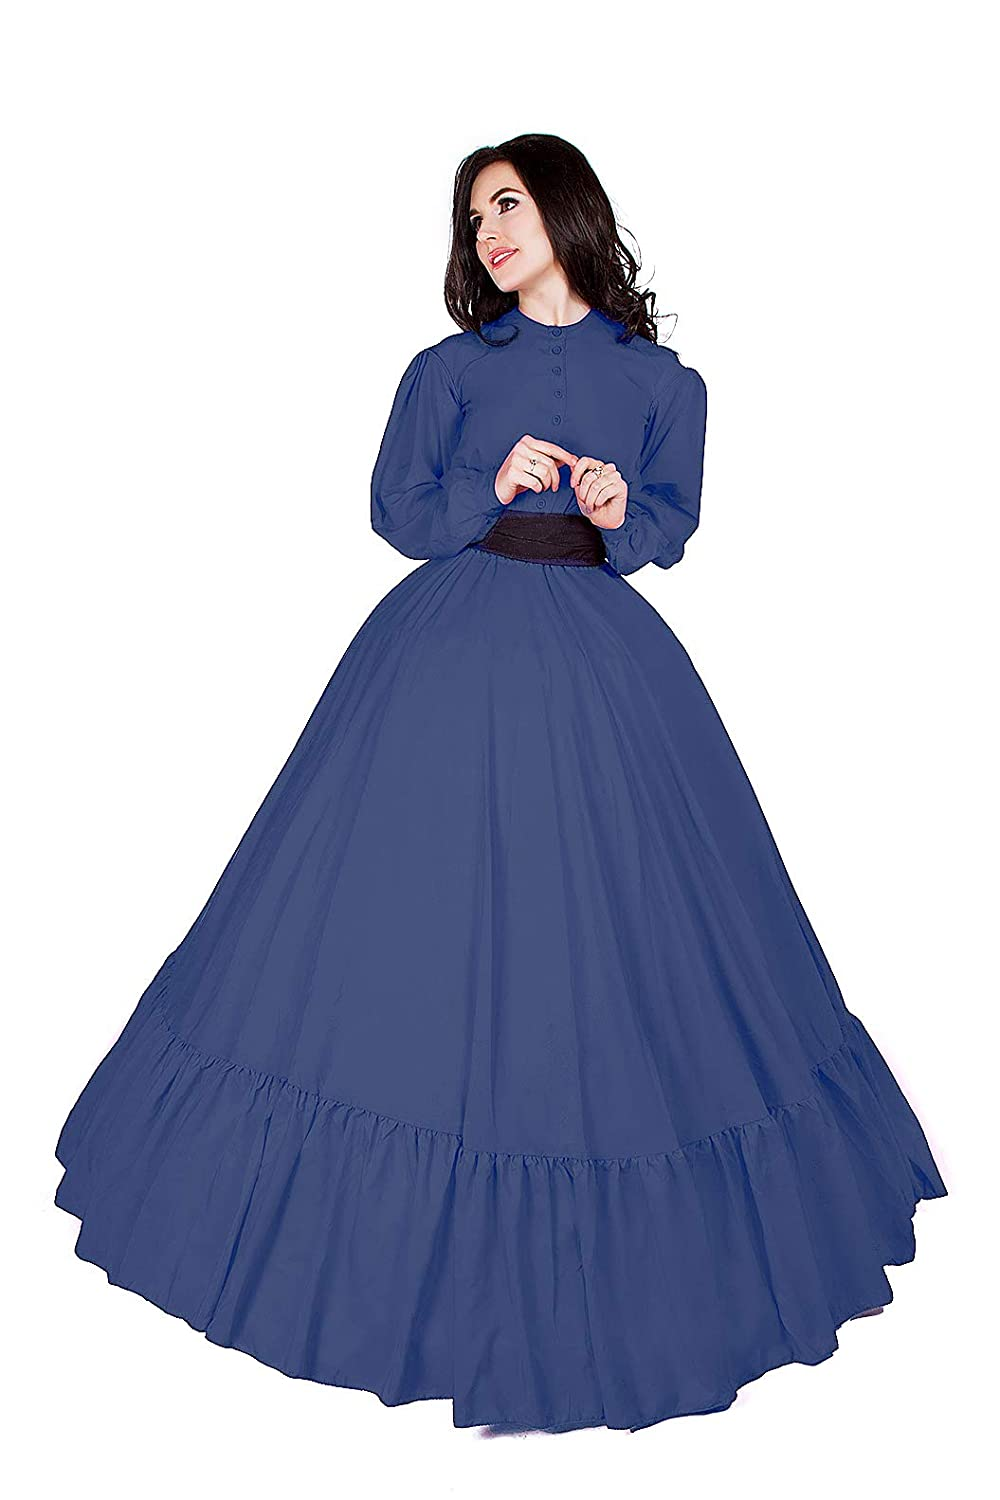 Victorian Civil War Plaid Prairie Dress Ball Gown Theater Reenactment Wear 158